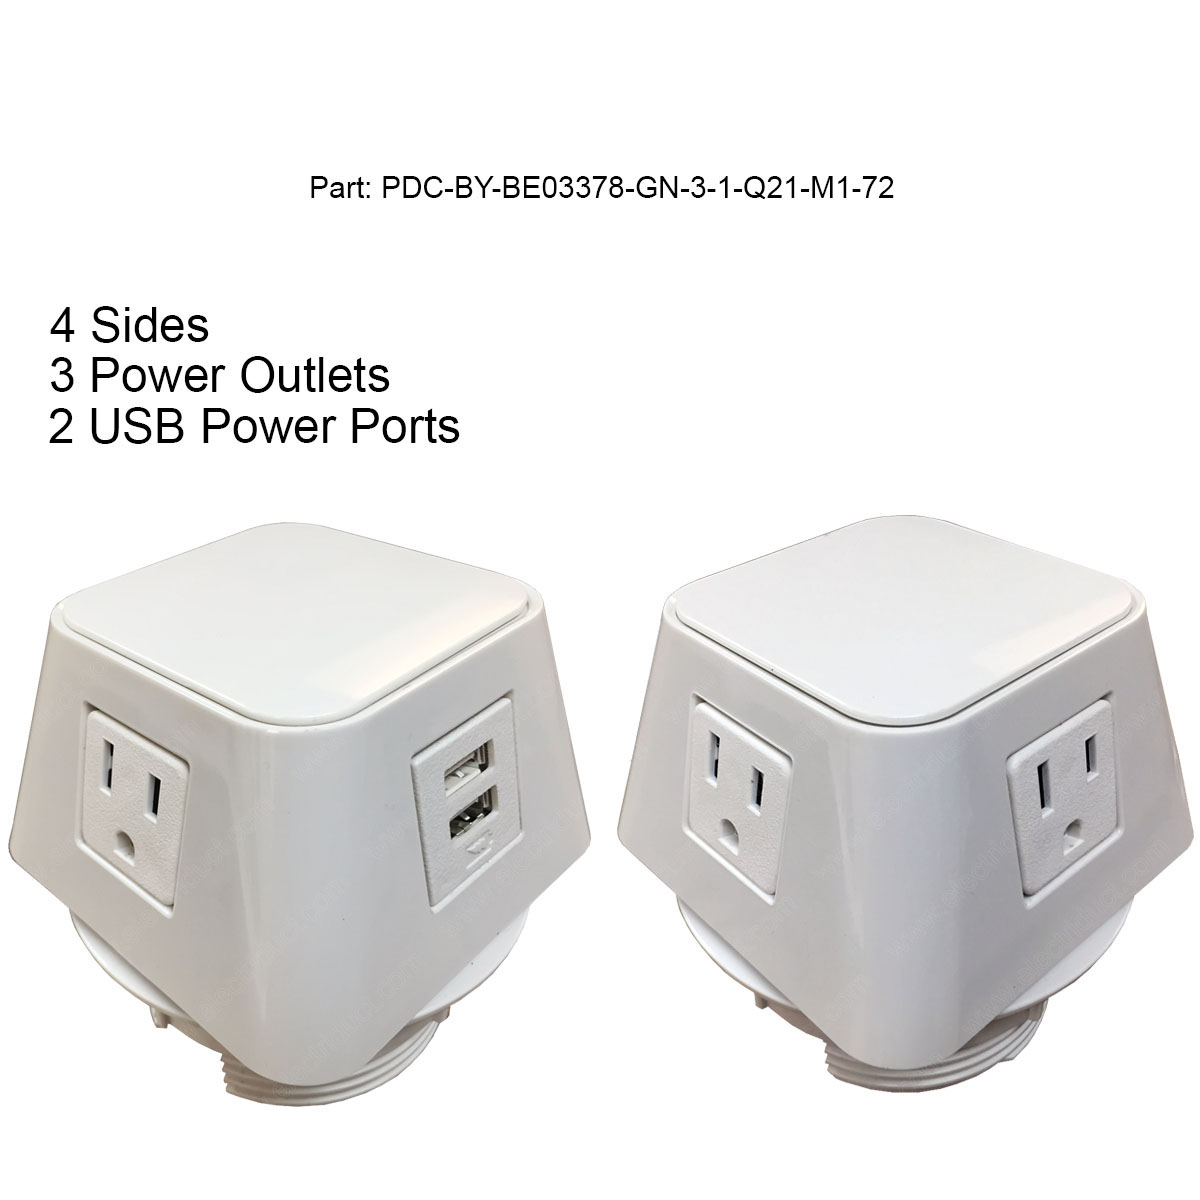 Contemporary Electrical Outlets The Cube Power Data Centers Usb Data